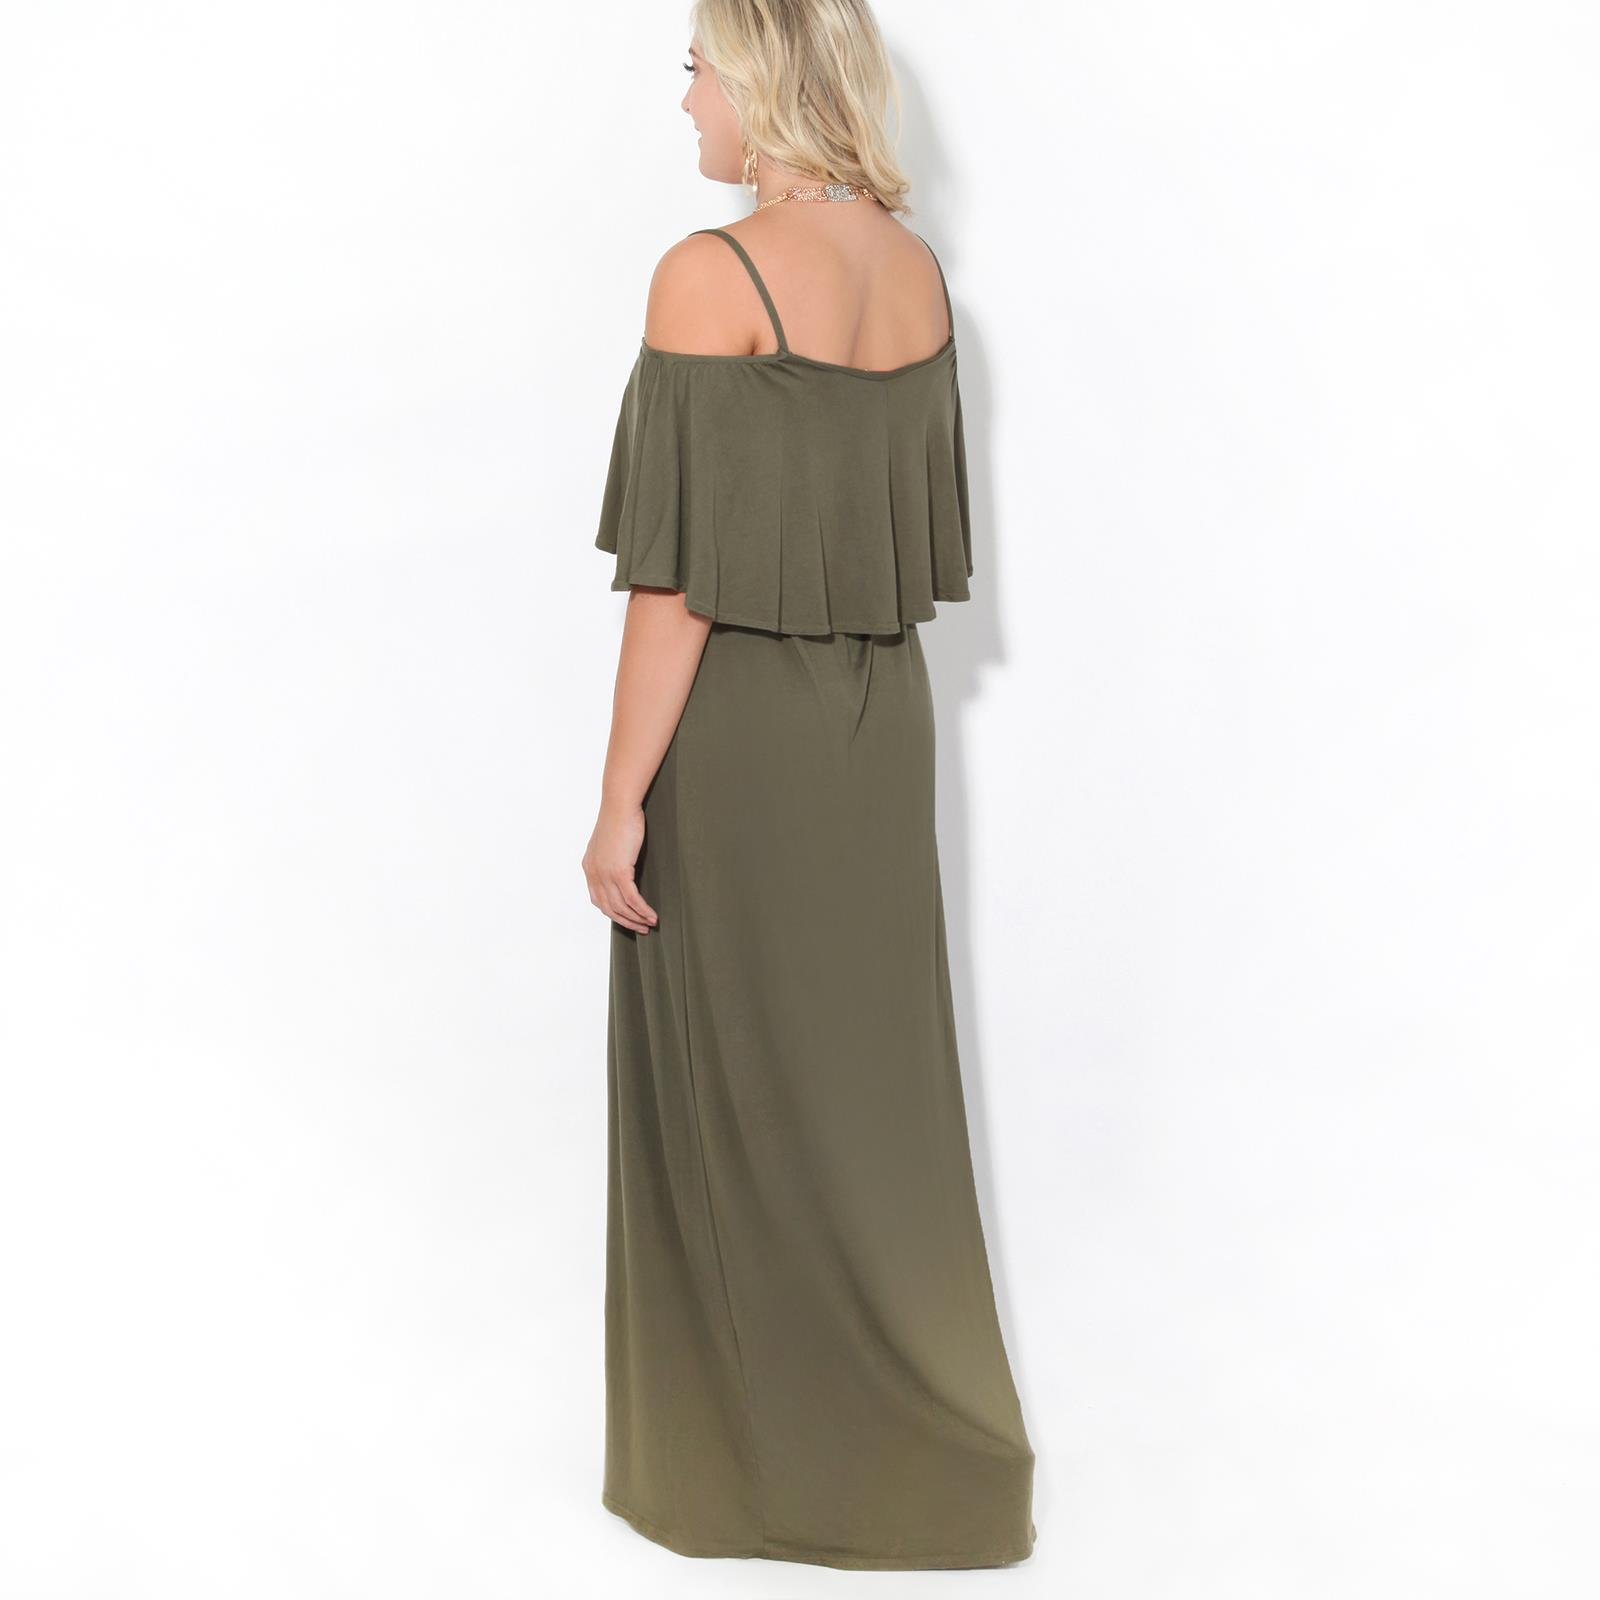 Womens-Ladies-Maxi-Dress-Sundress-Cold-Off-Shoulder-Strappy-Ruffle-Jersey-Summer thumbnail 7